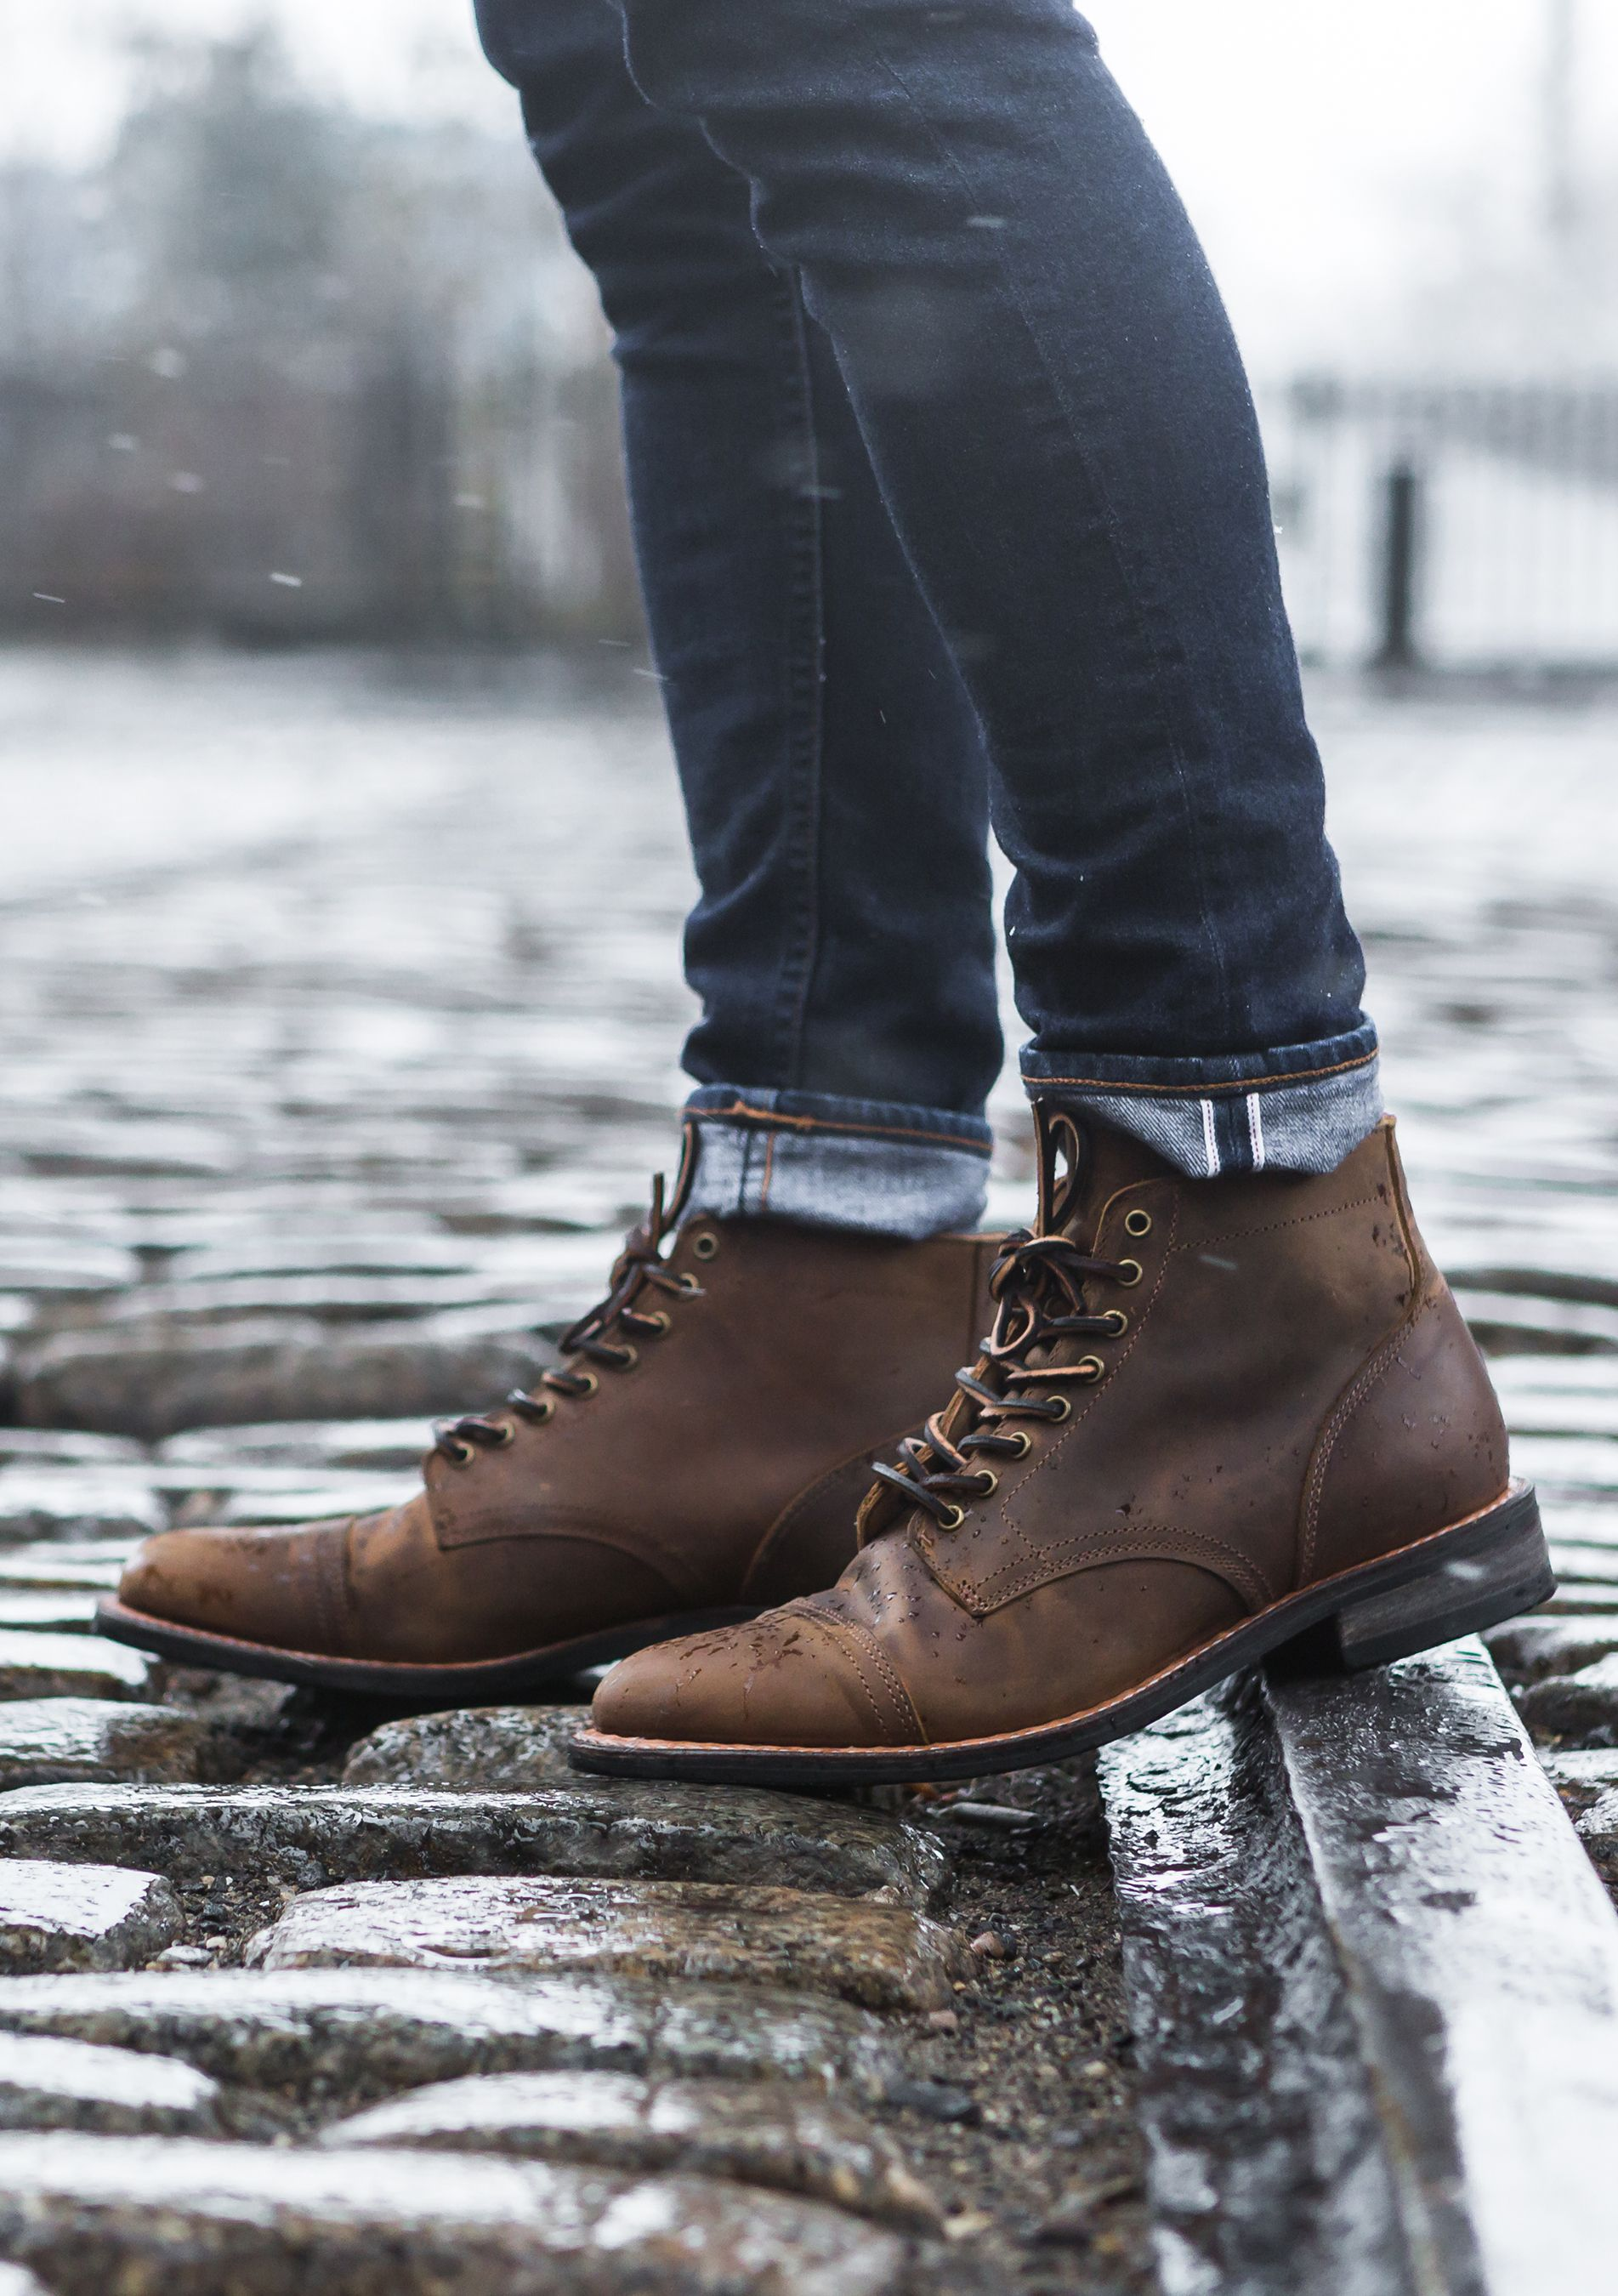 599955ebb Shop the Men's Vanguard Boot at thursdayboots.com. Made in the USA.  Available